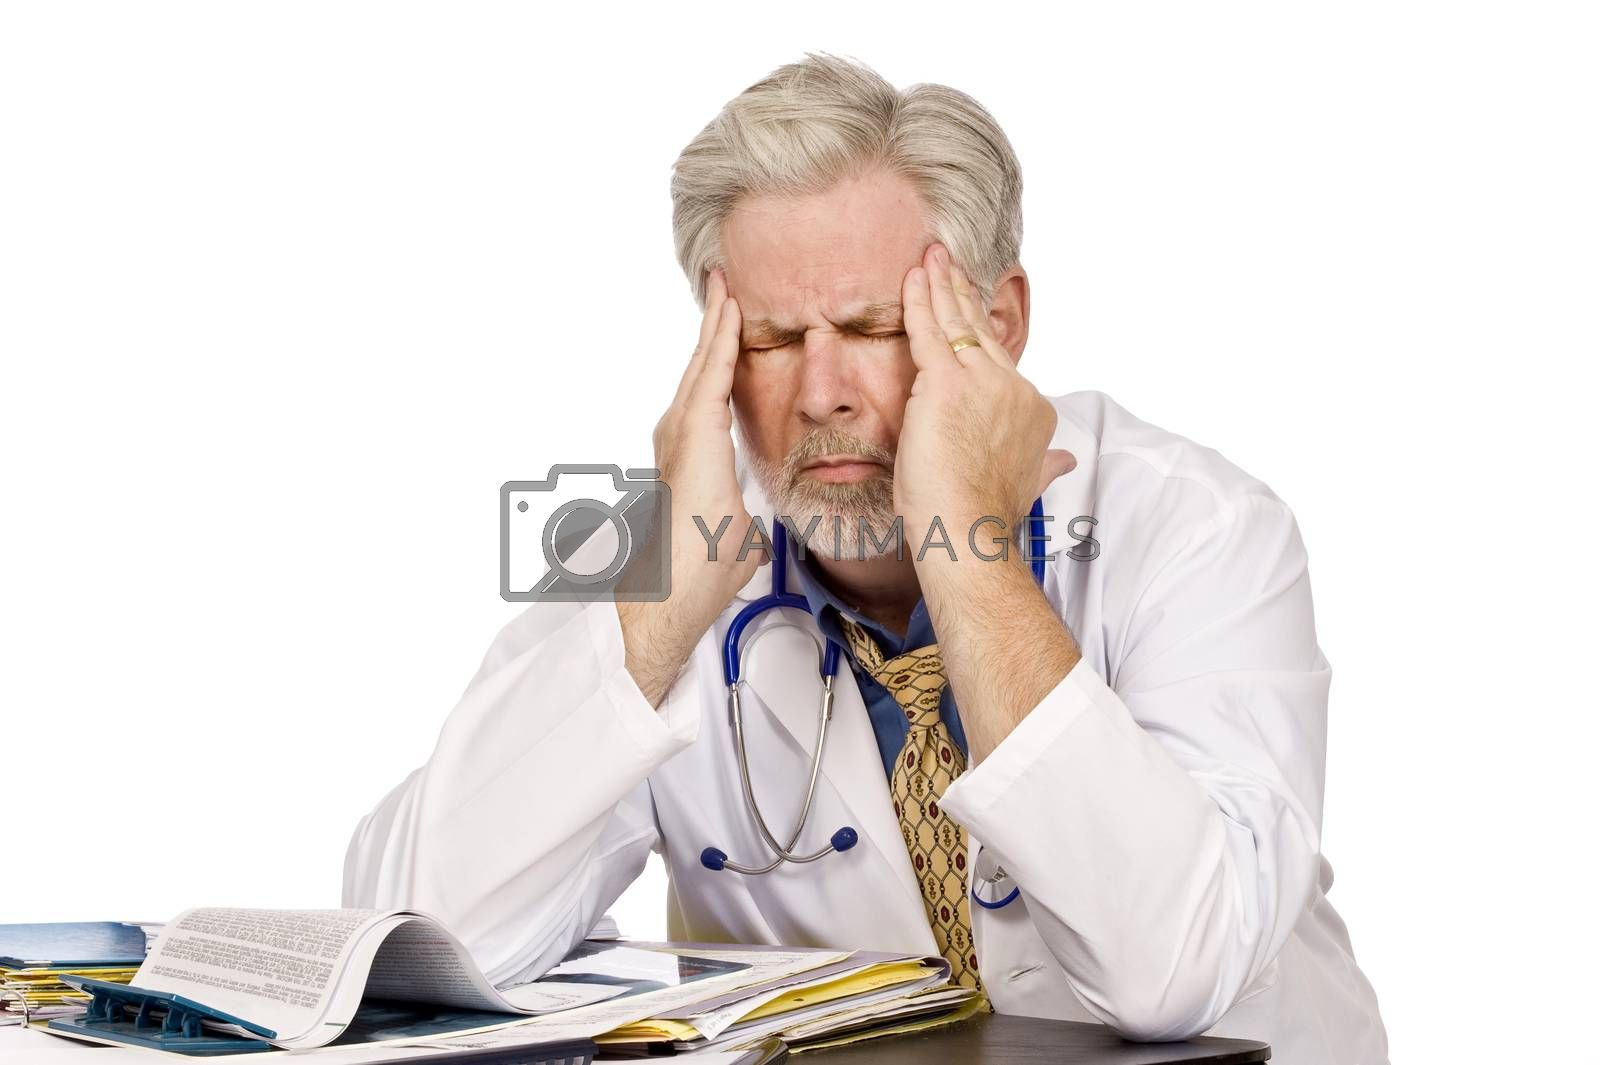 Horizontal shot of a tired doctor at his desk with a bad headache.